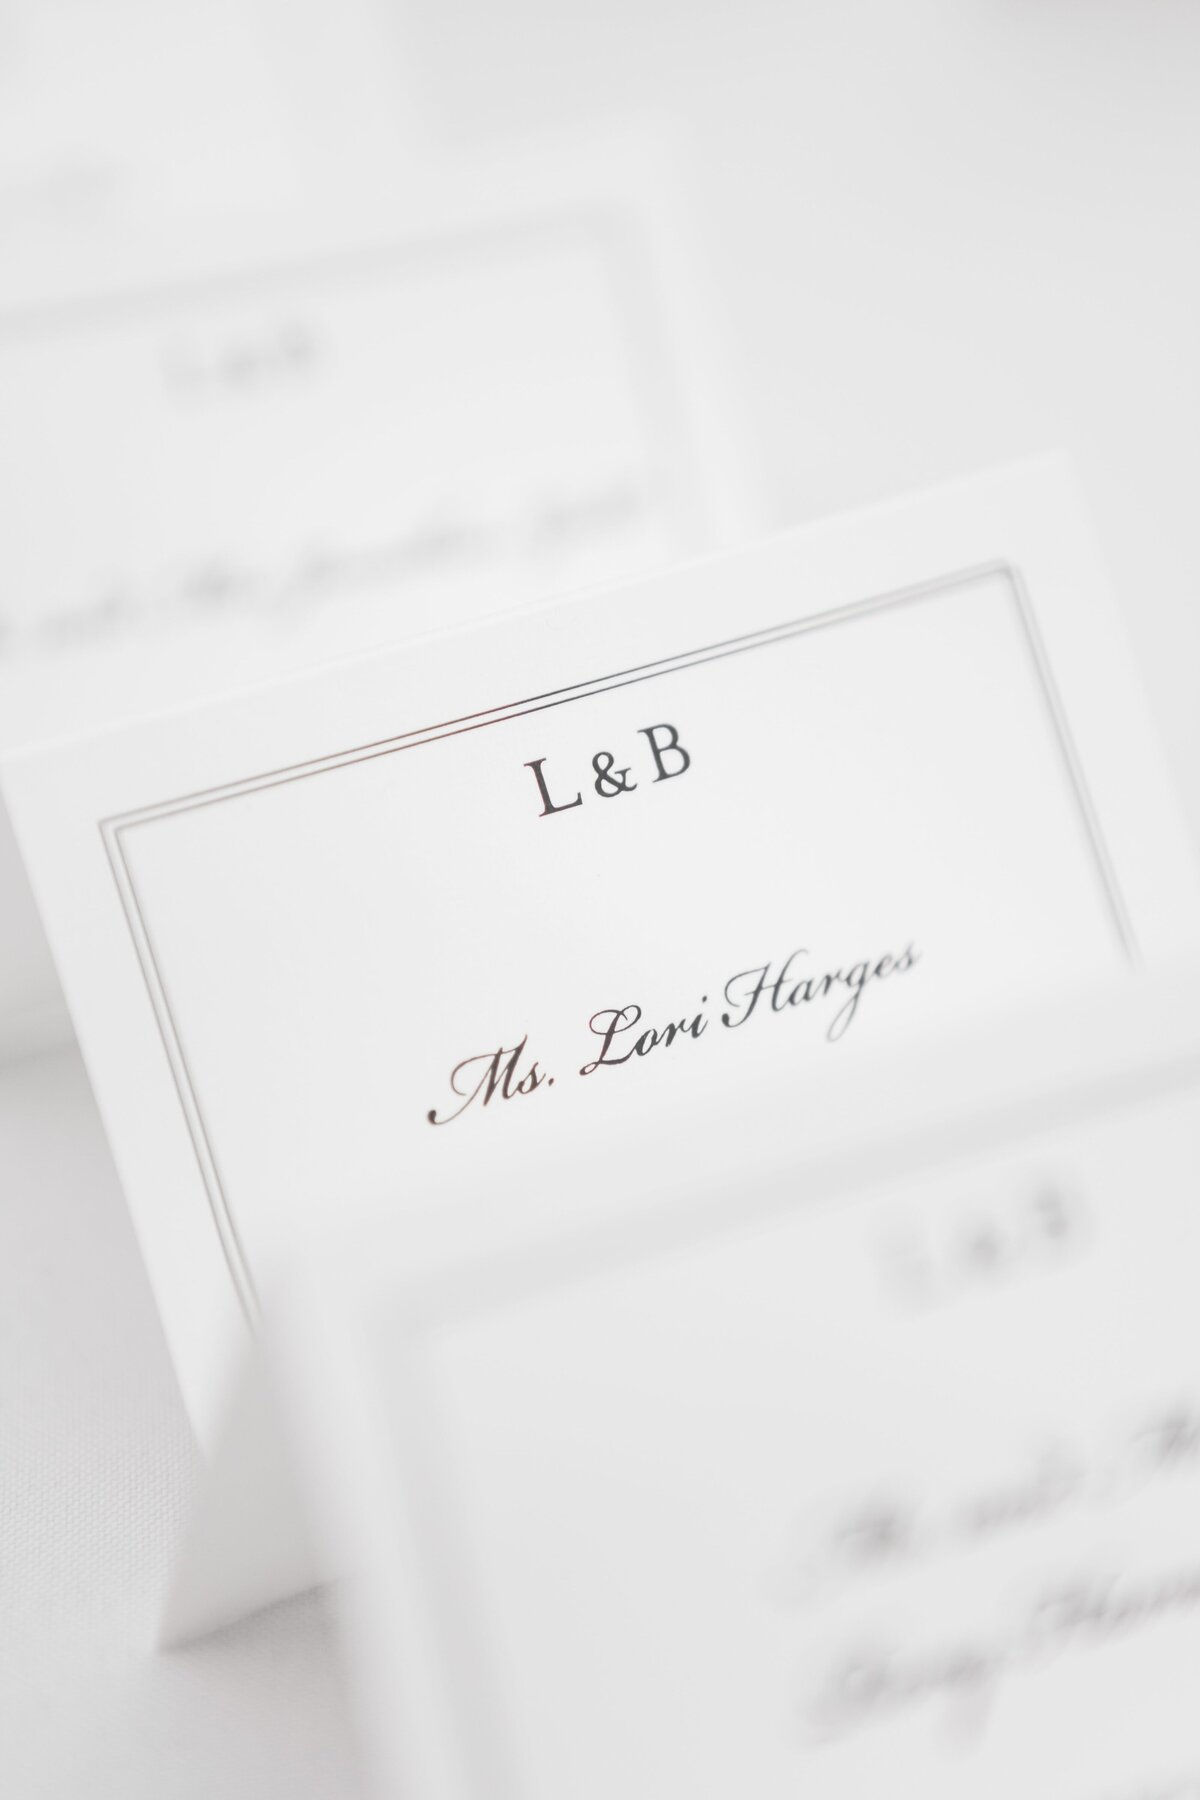 Kelli-Bee-Photography-Gallery-Malibu-Los-Angeles-Wedding-Luxury-Lifestyle-Photographer-Lauren-Ben-0066